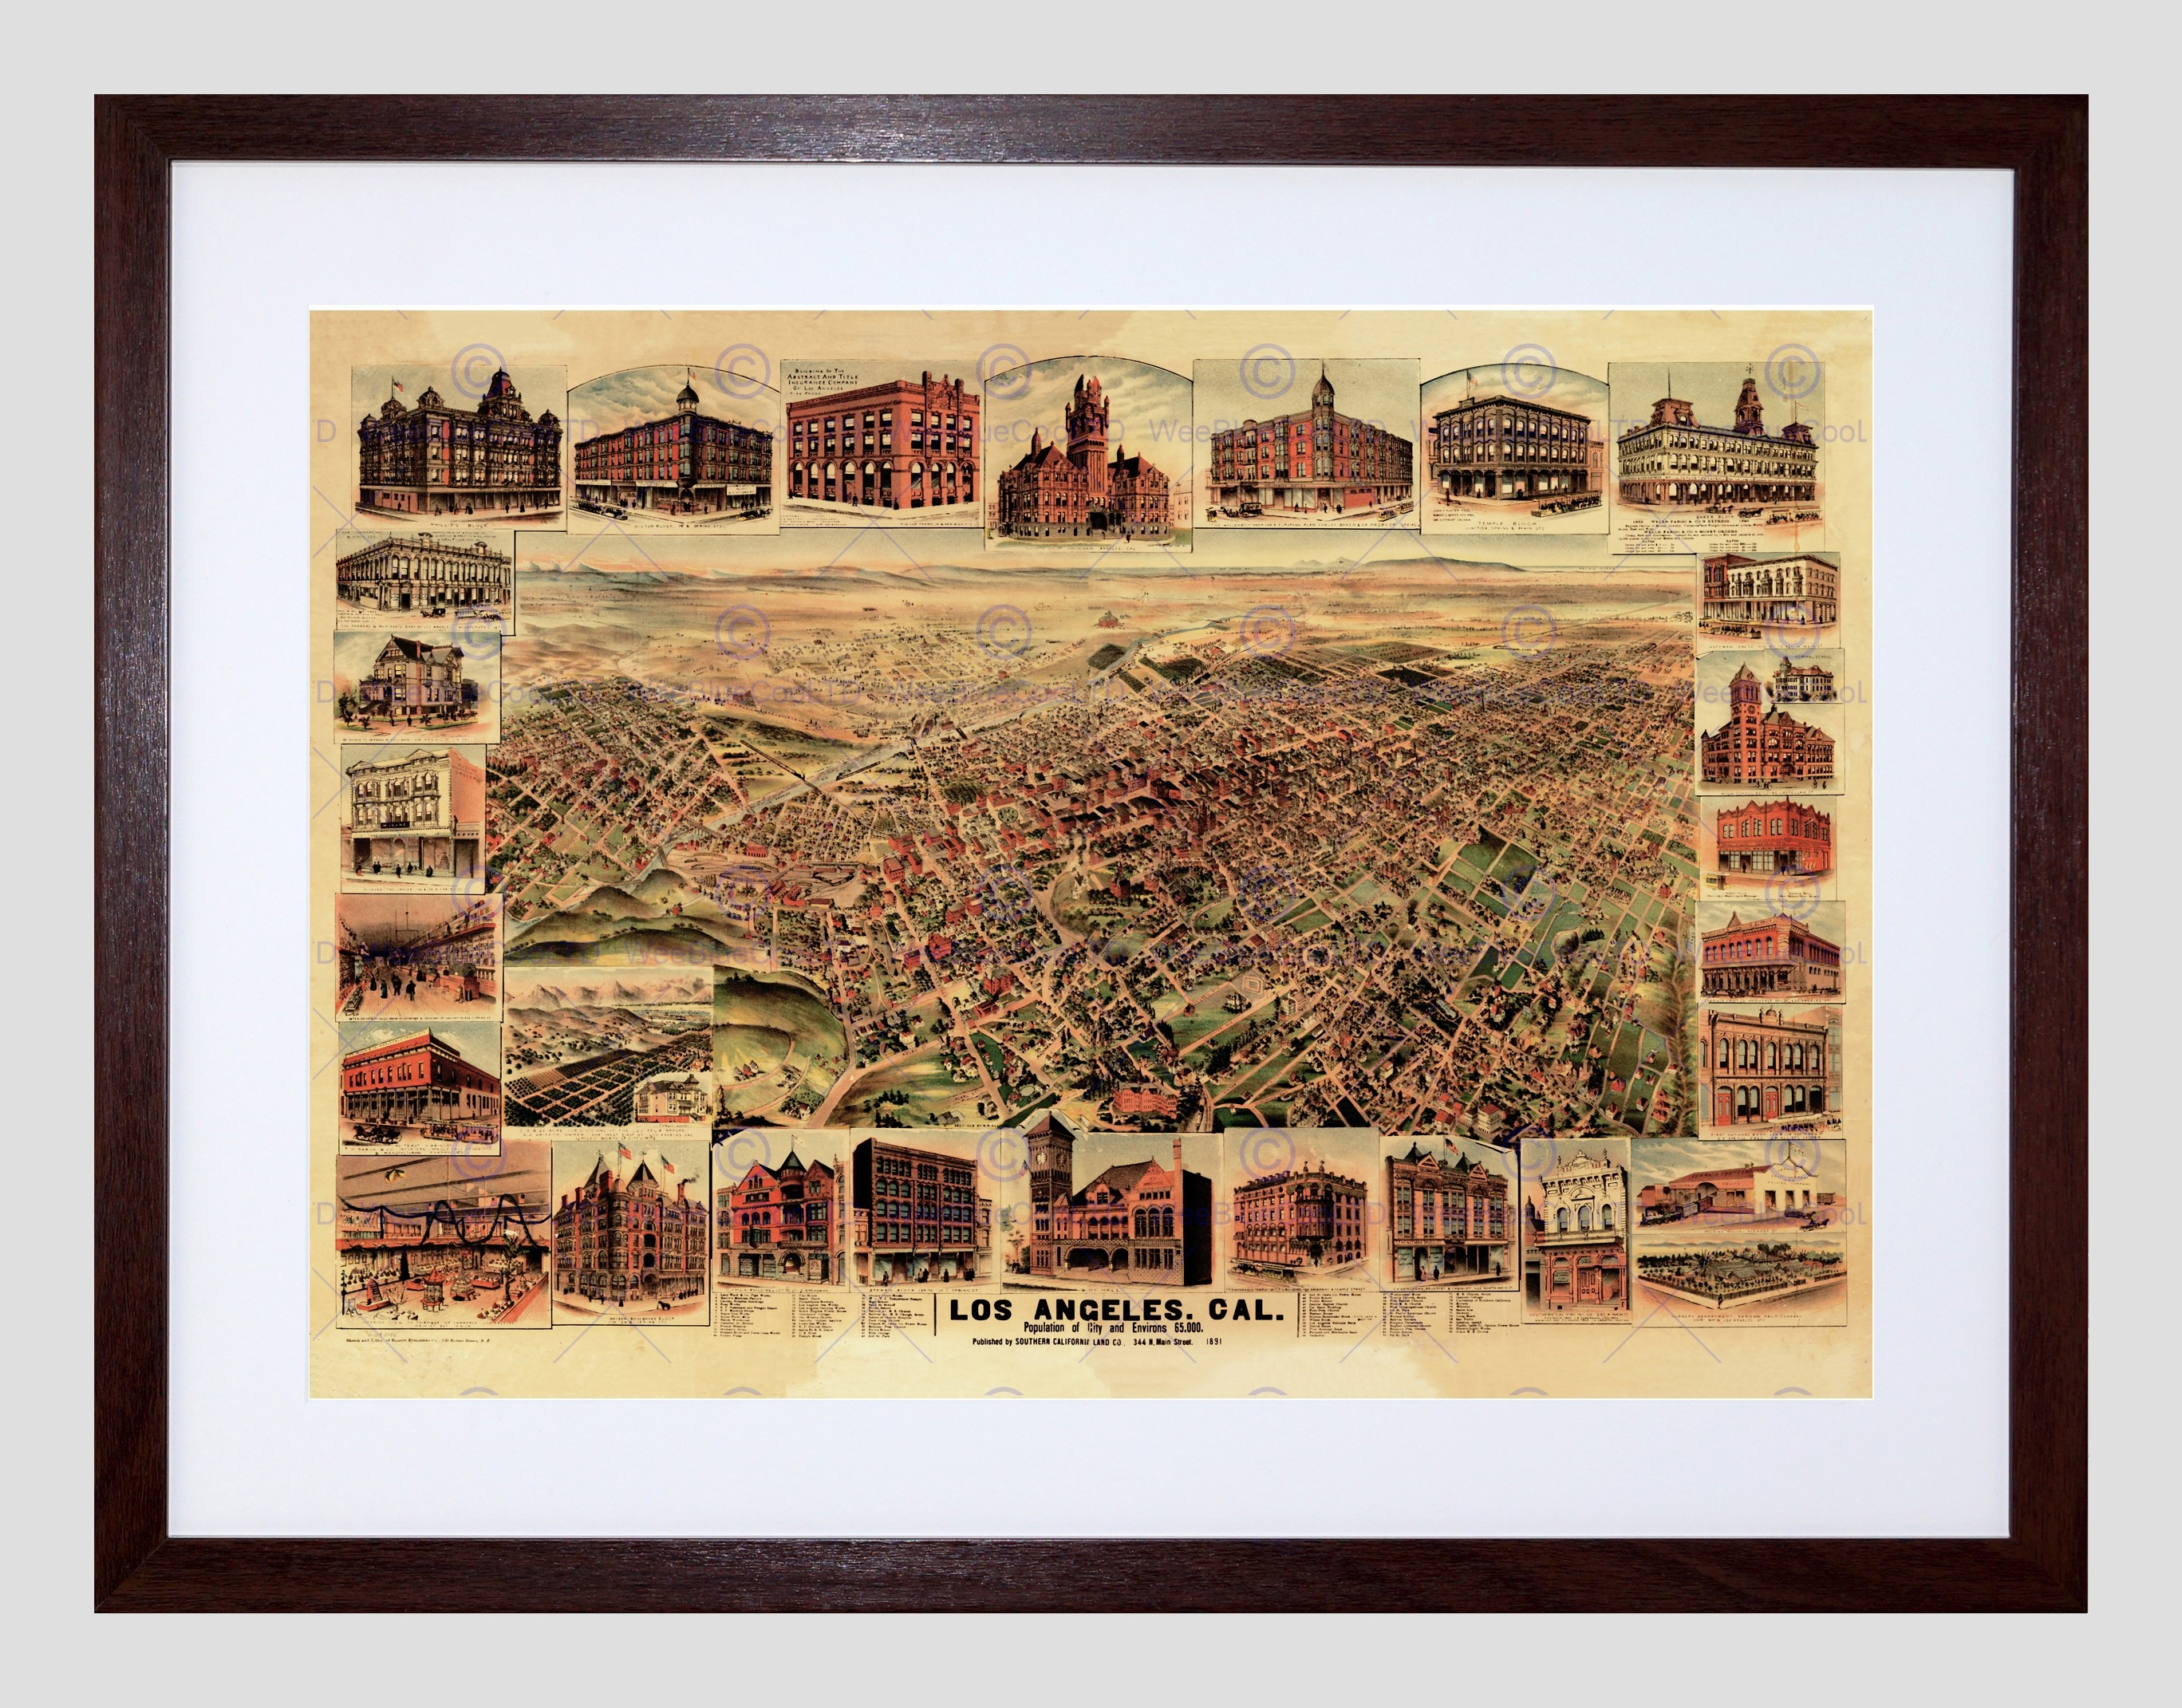 Map Los Angeles California 1891 Framed Art Print Poster F12X10076 Inside Recent Los Angeles Framed Art Prints (Gallery 15 of 15)